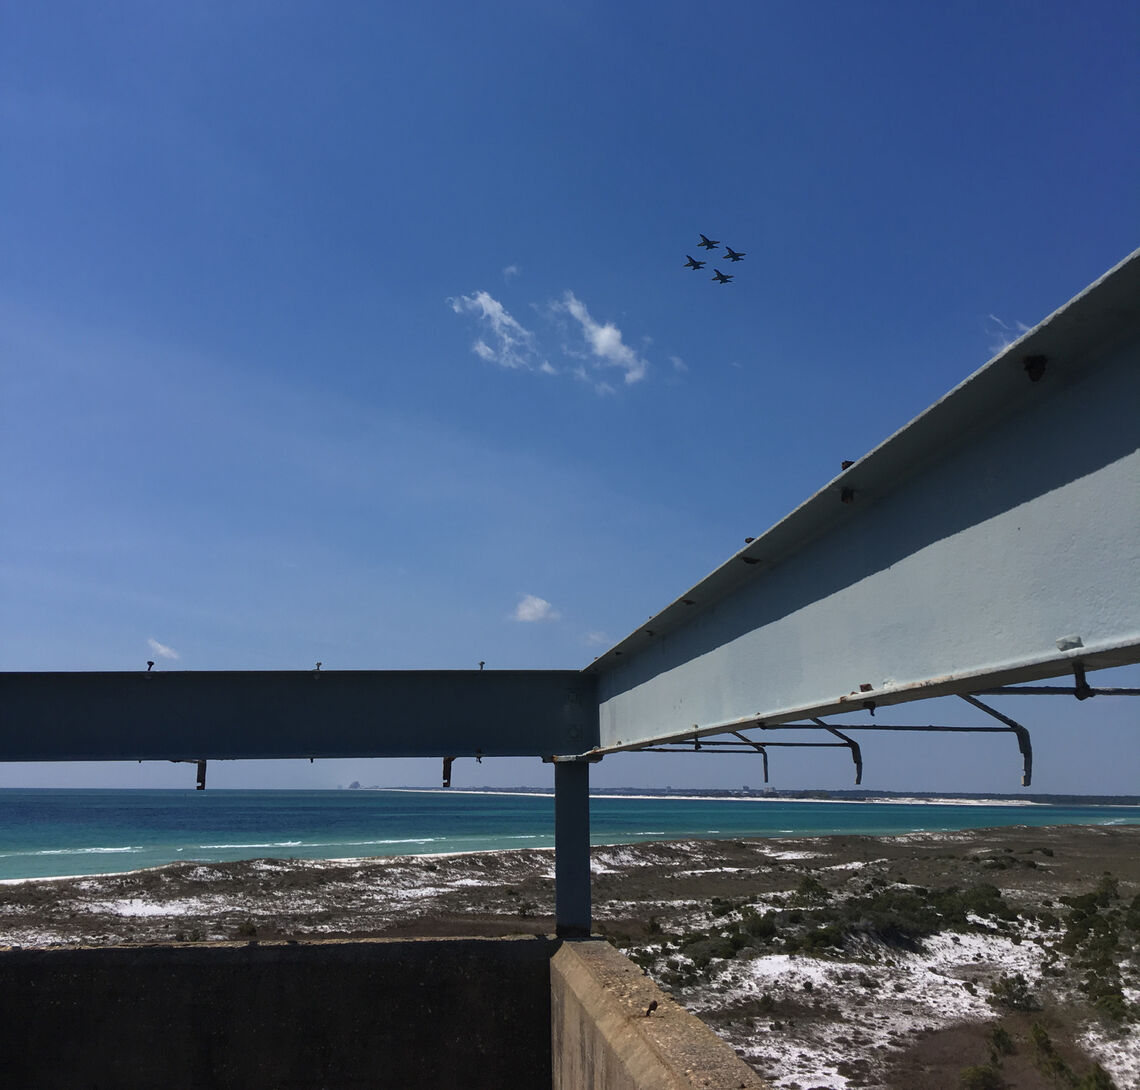 Blue Angels flyover at Gulf Islands National Seashore